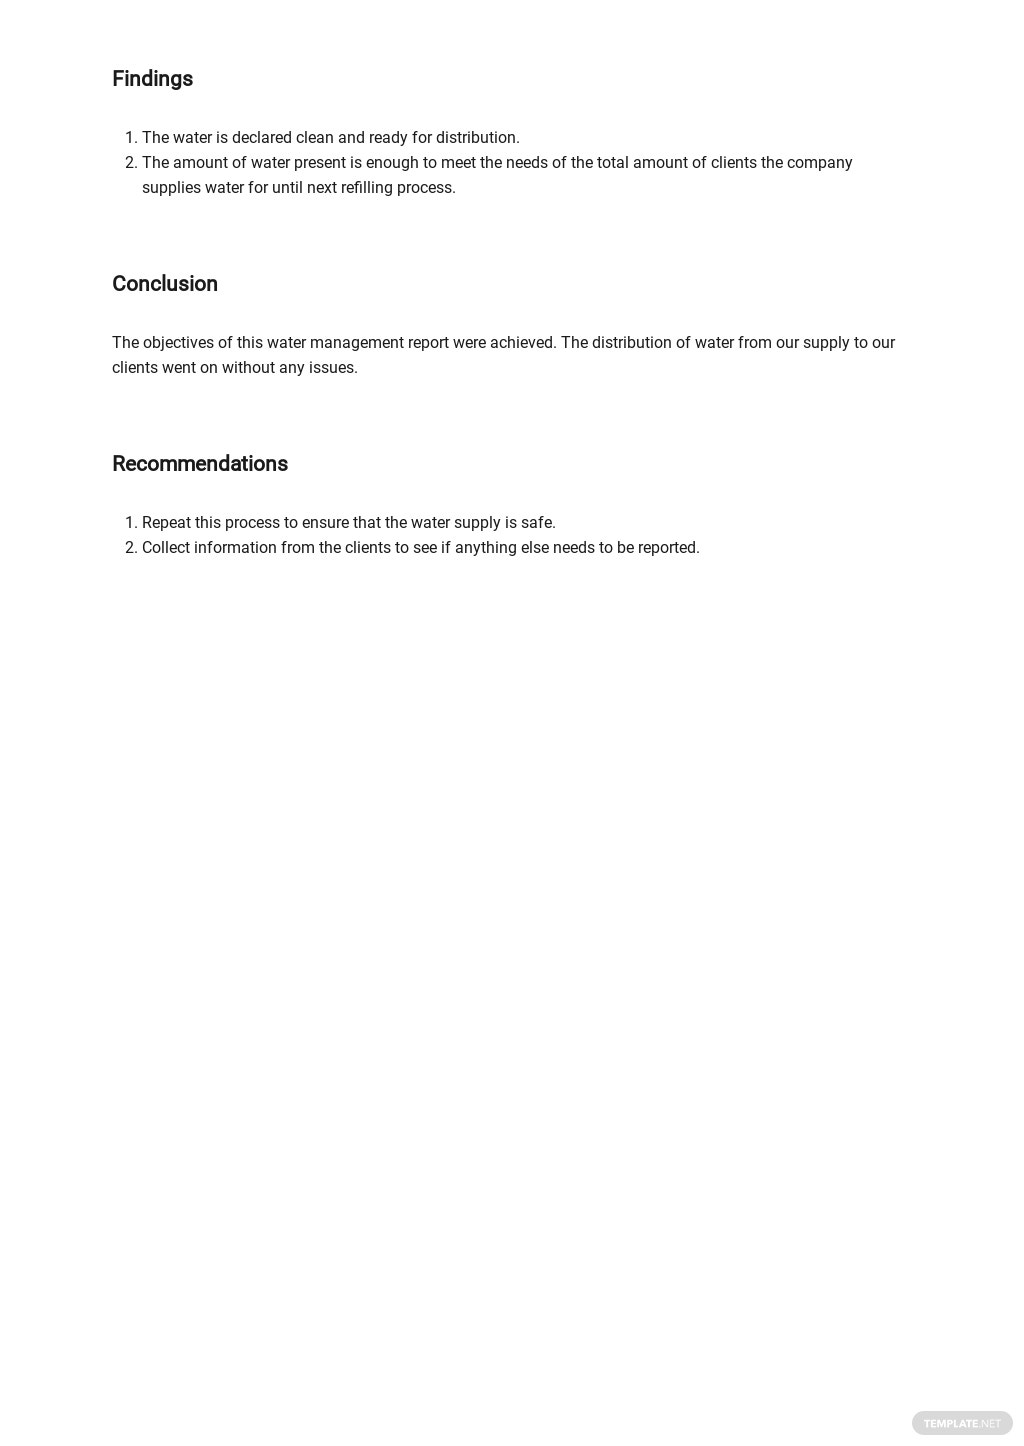 Free Water Management Report Template 3.jpe